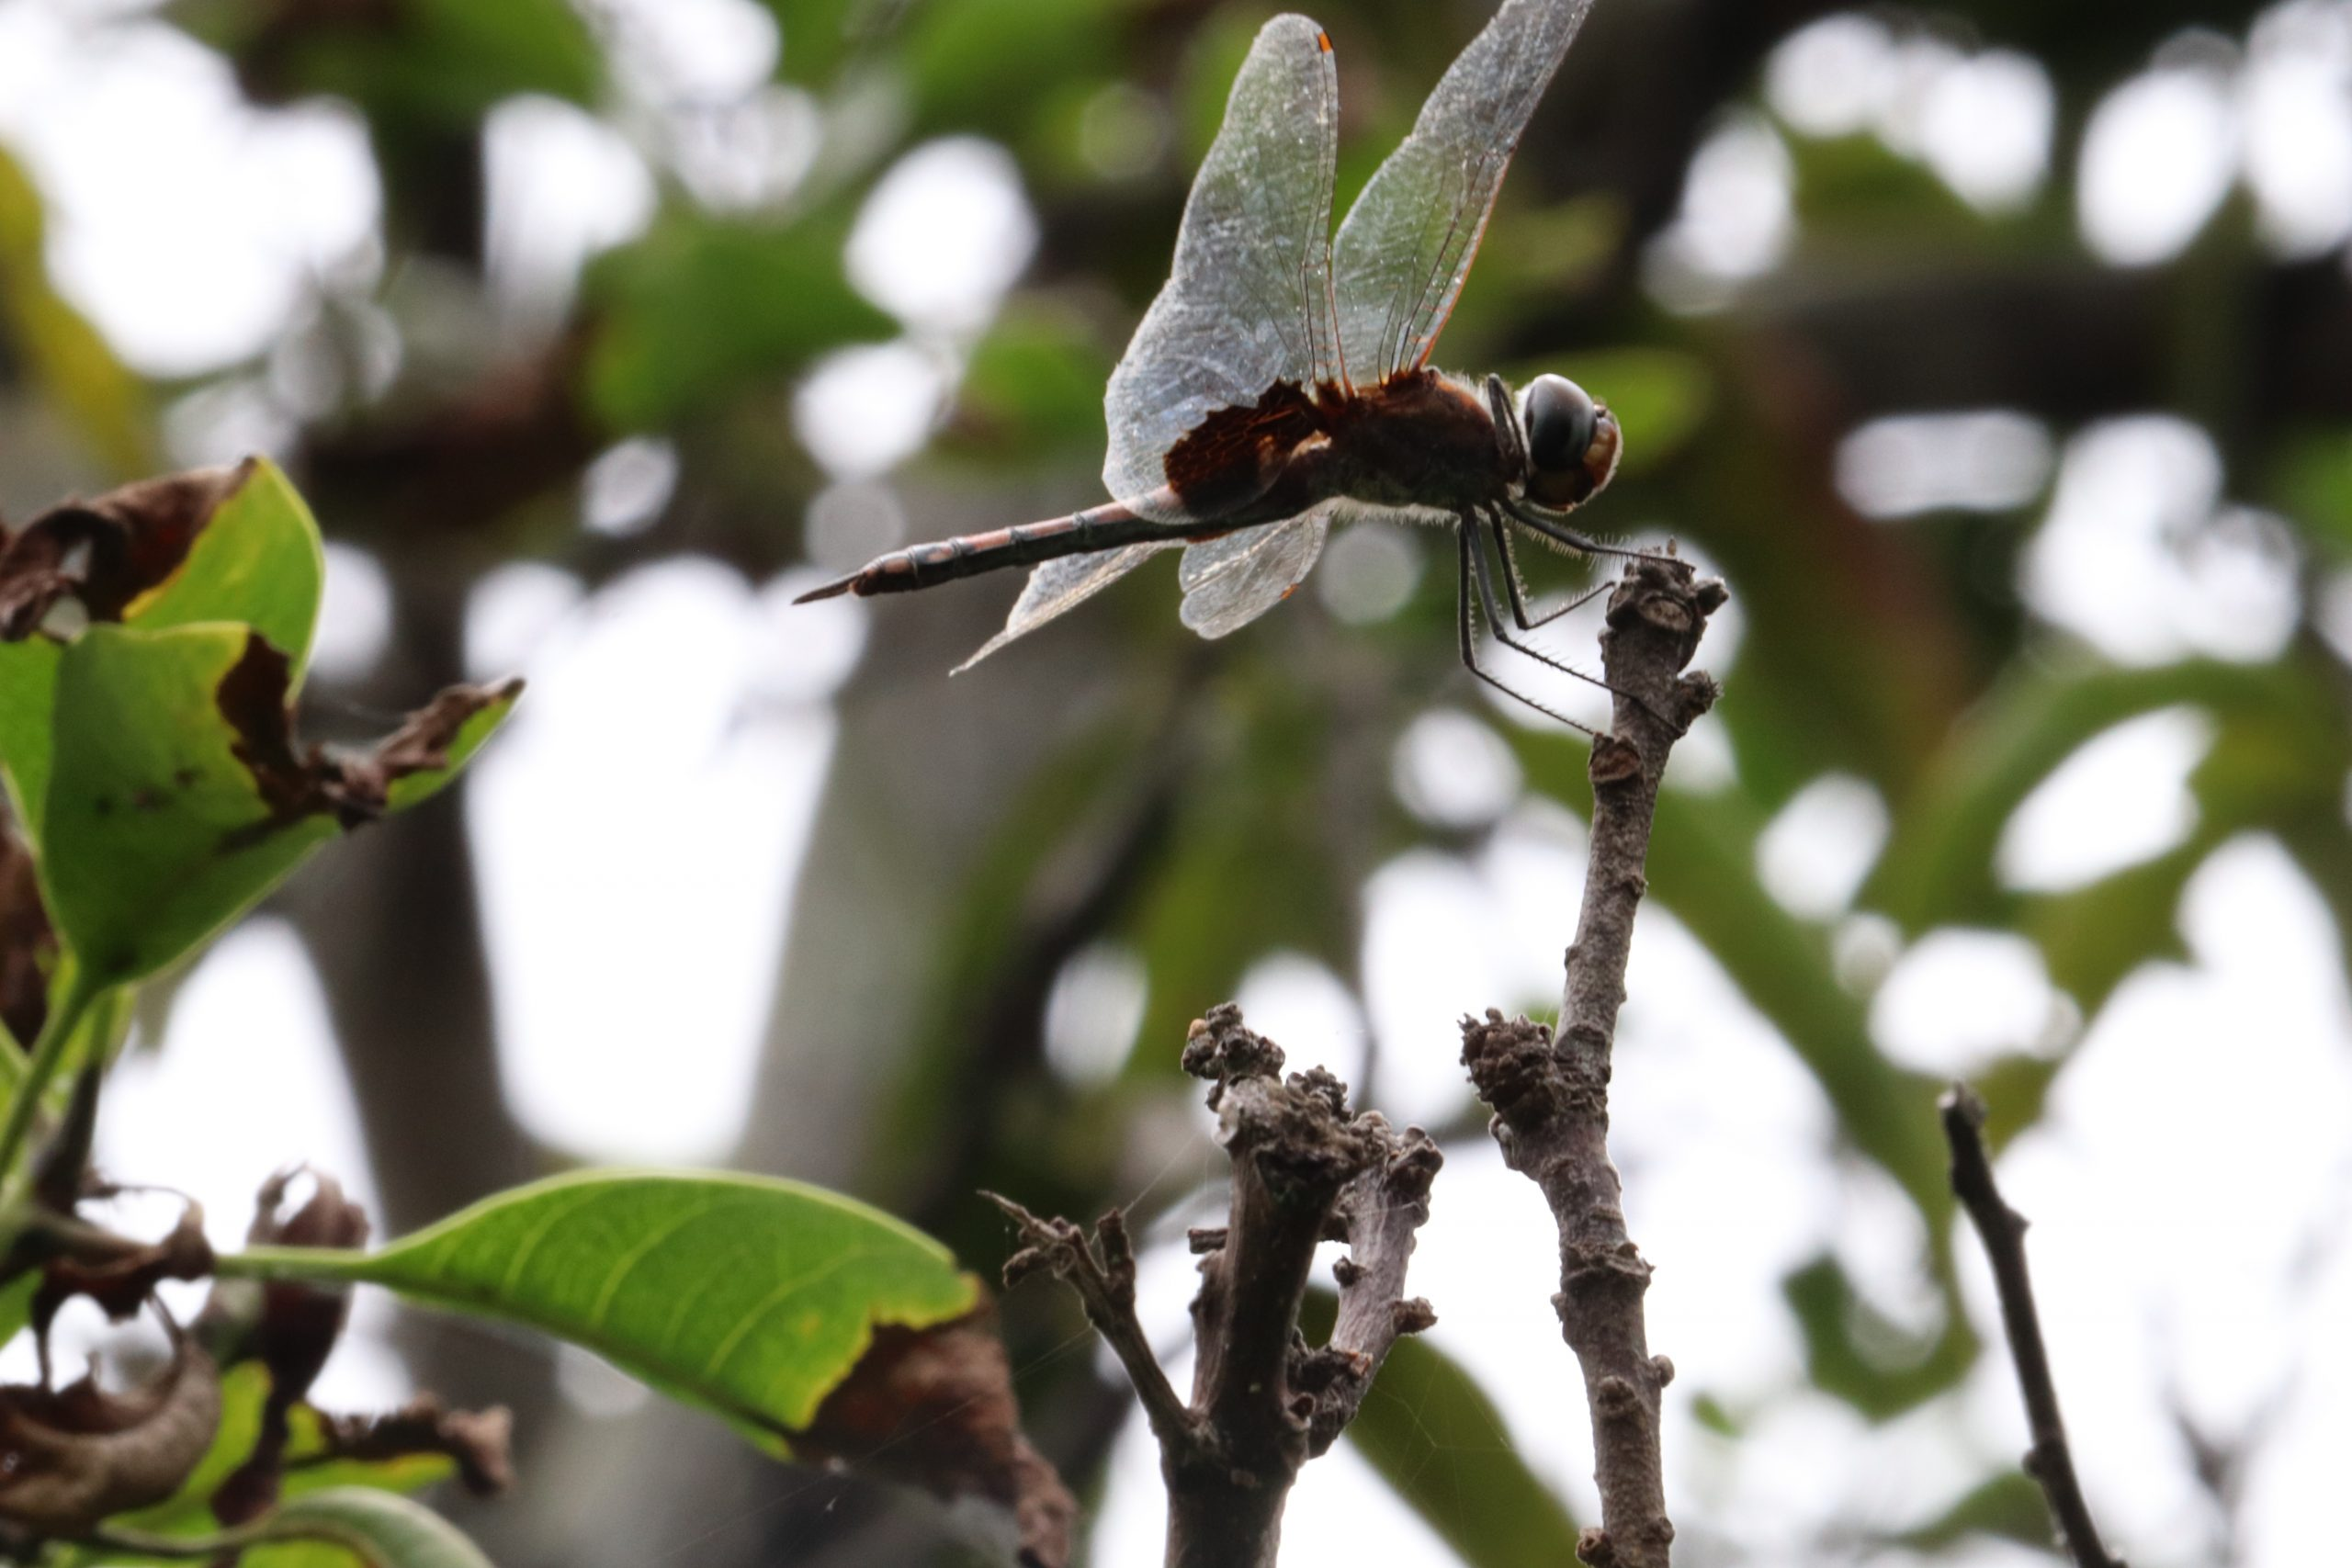 An insect with large wings